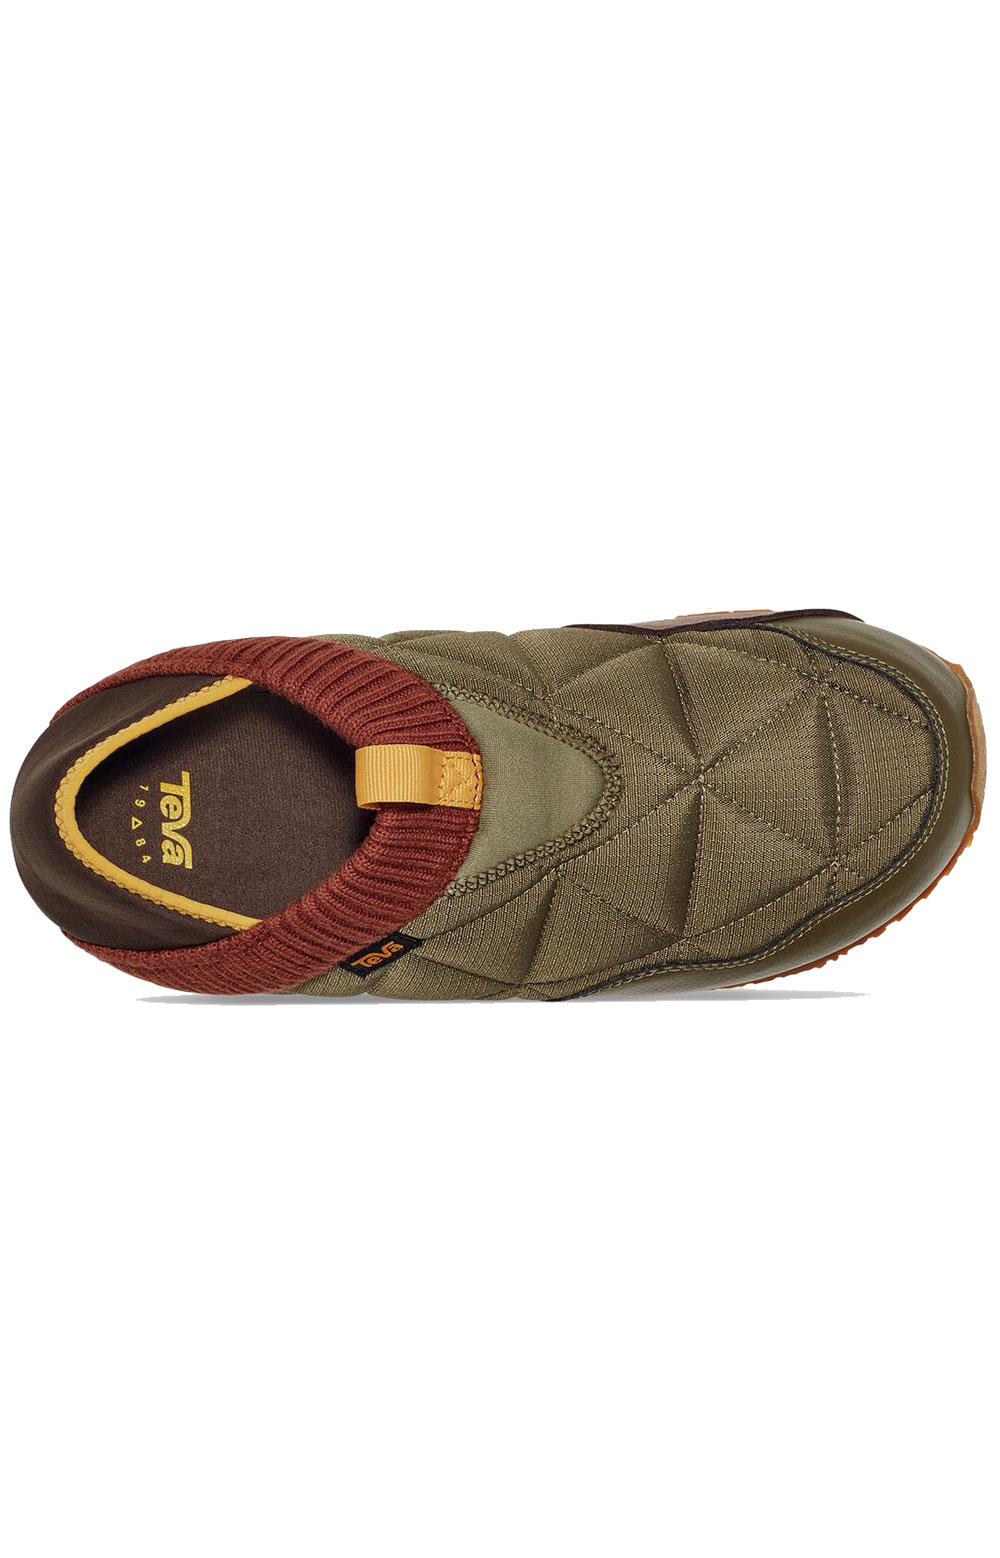 (1125472) ReEMBER Moccasins - Olive/Brown Multi  5